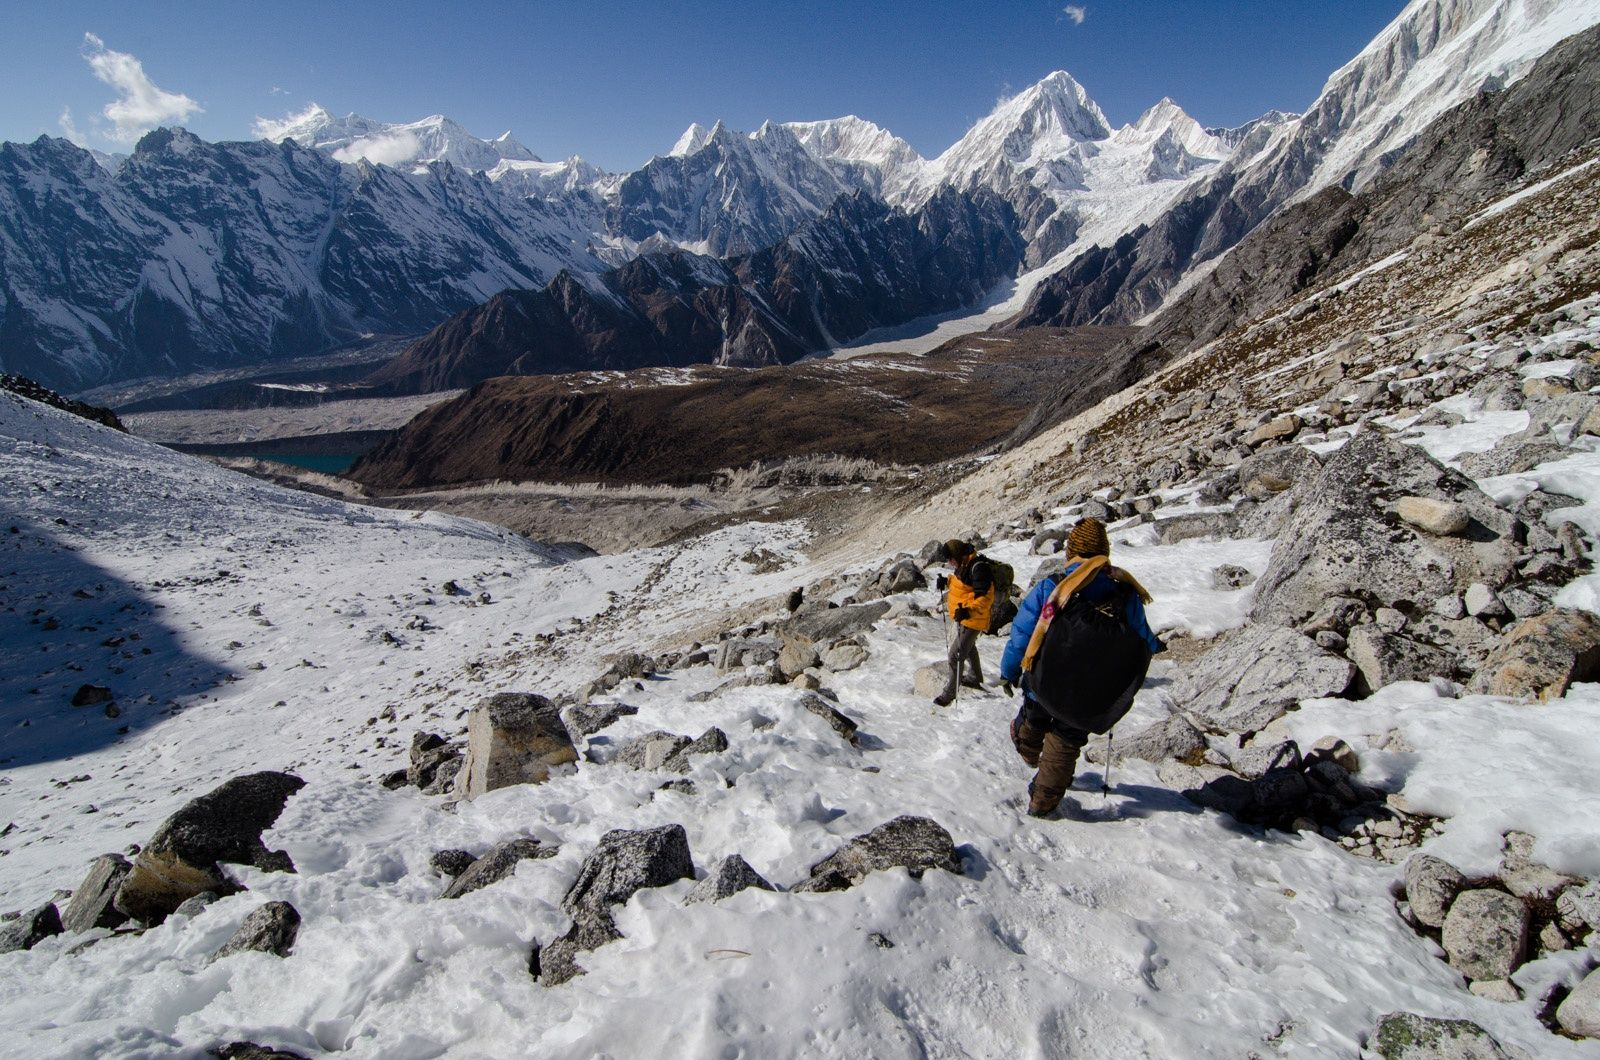 15 lessons I learned trekking the Manaslu Circuit in Nepal